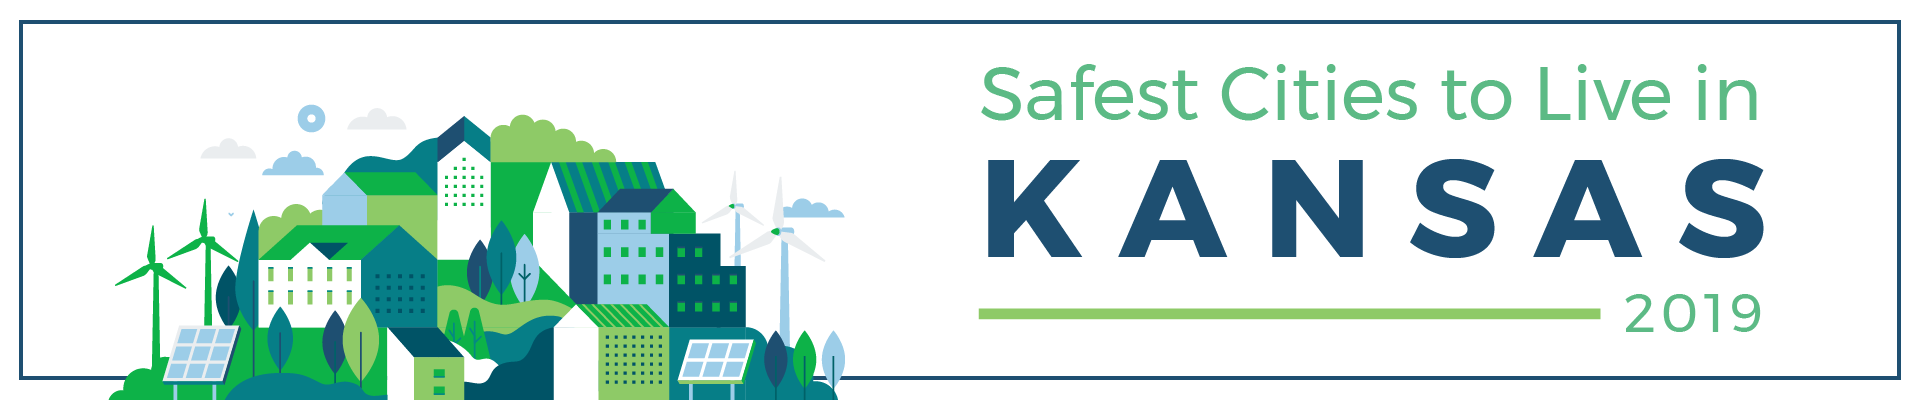 header - safest_cities_kansas_2019